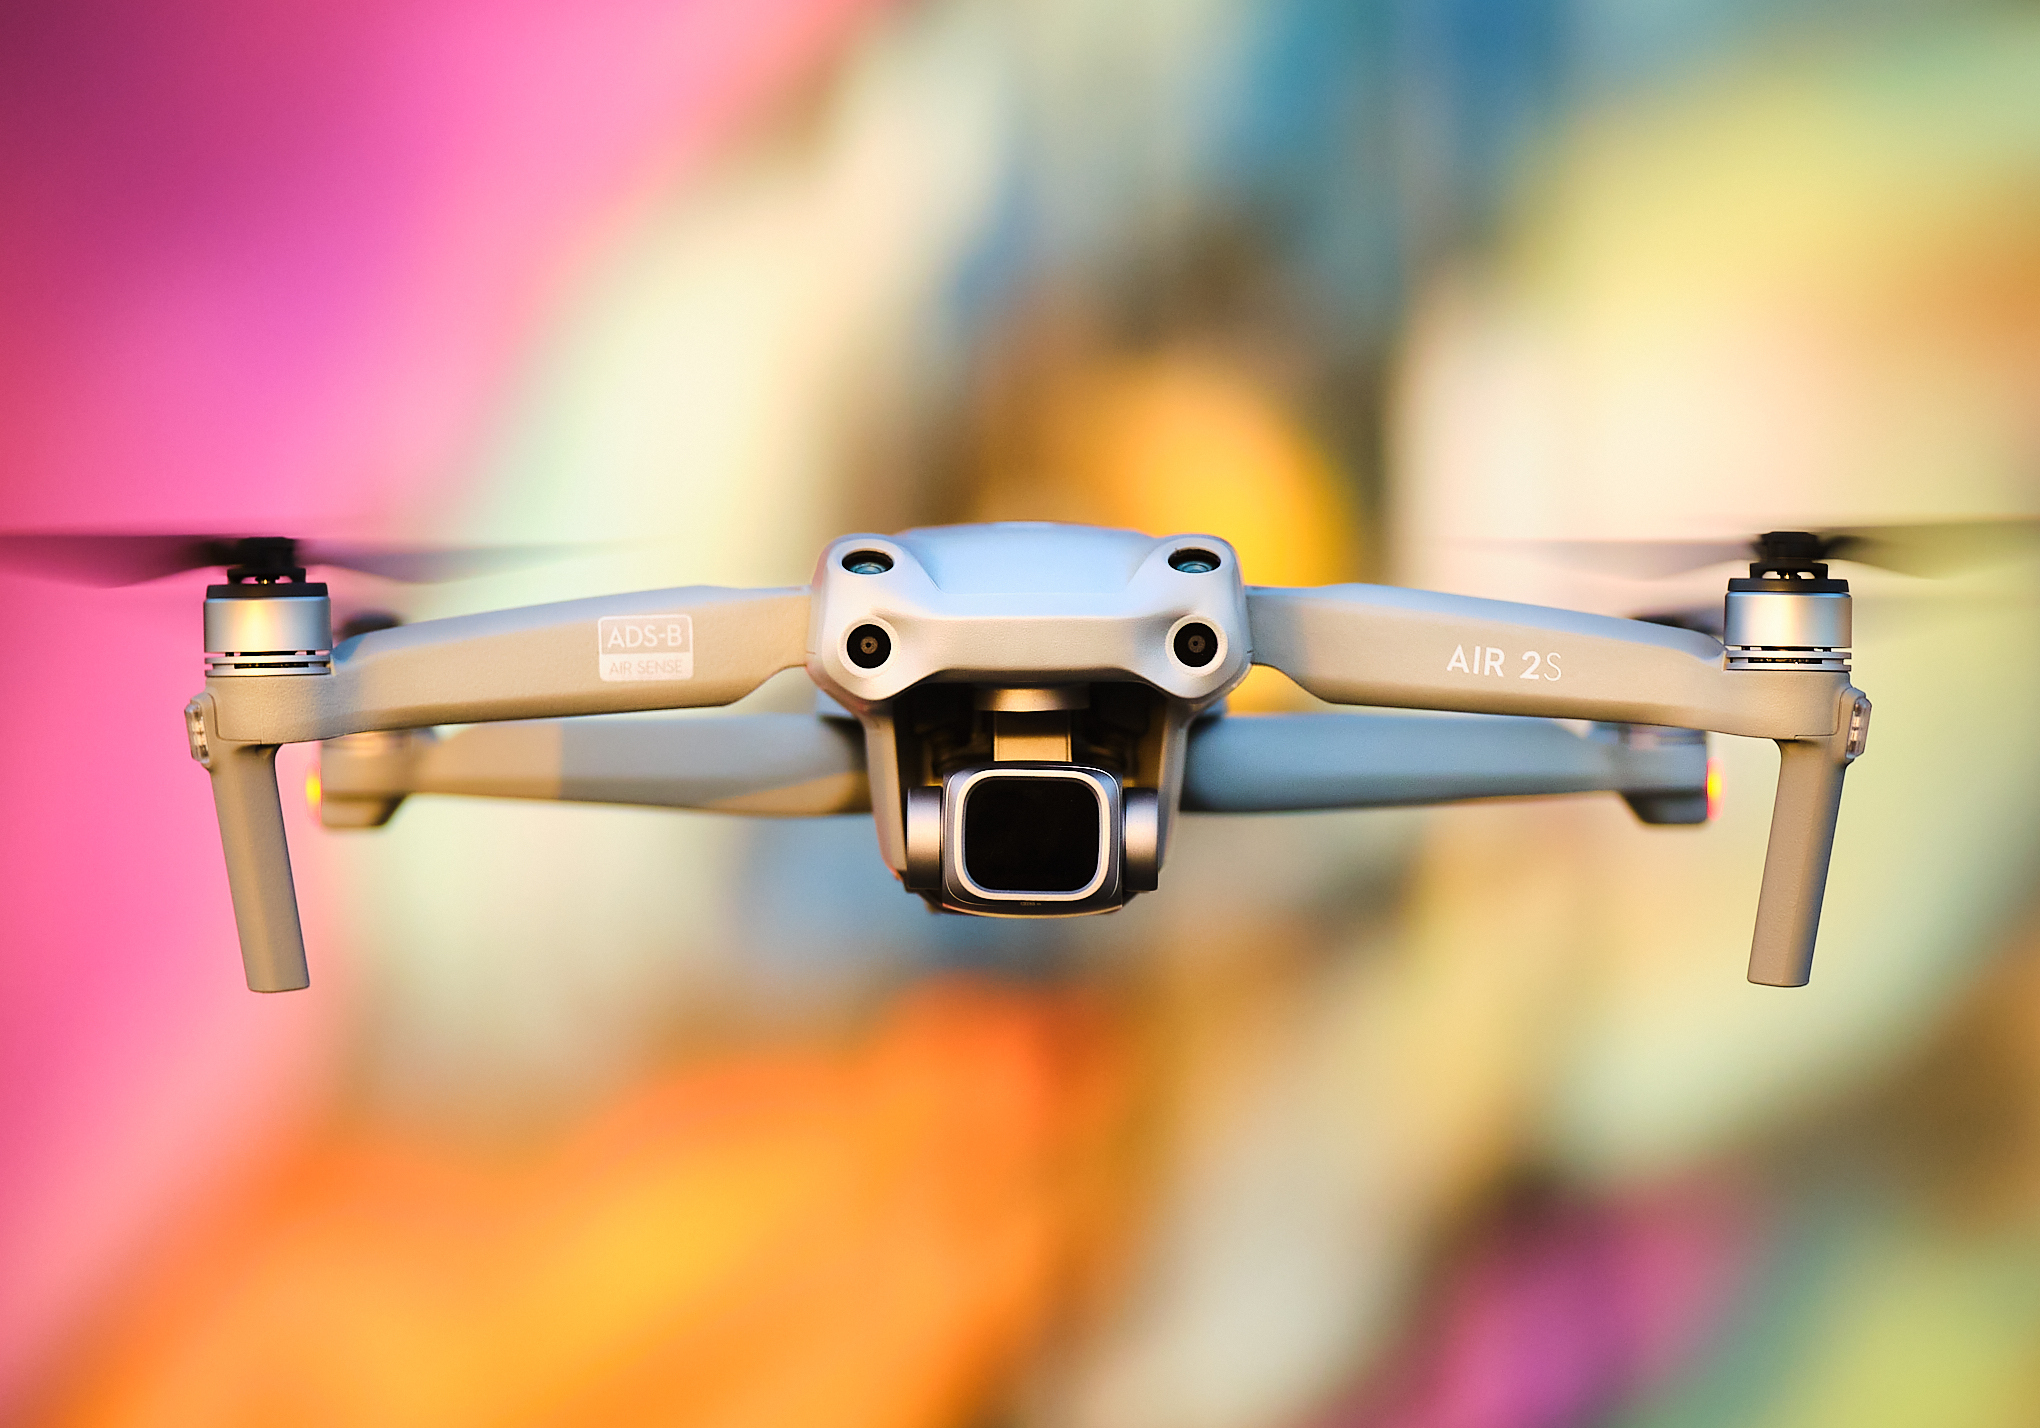 DJI Mavic Air 2S 4K Drone Review: The Best Valuable Drone For 2021